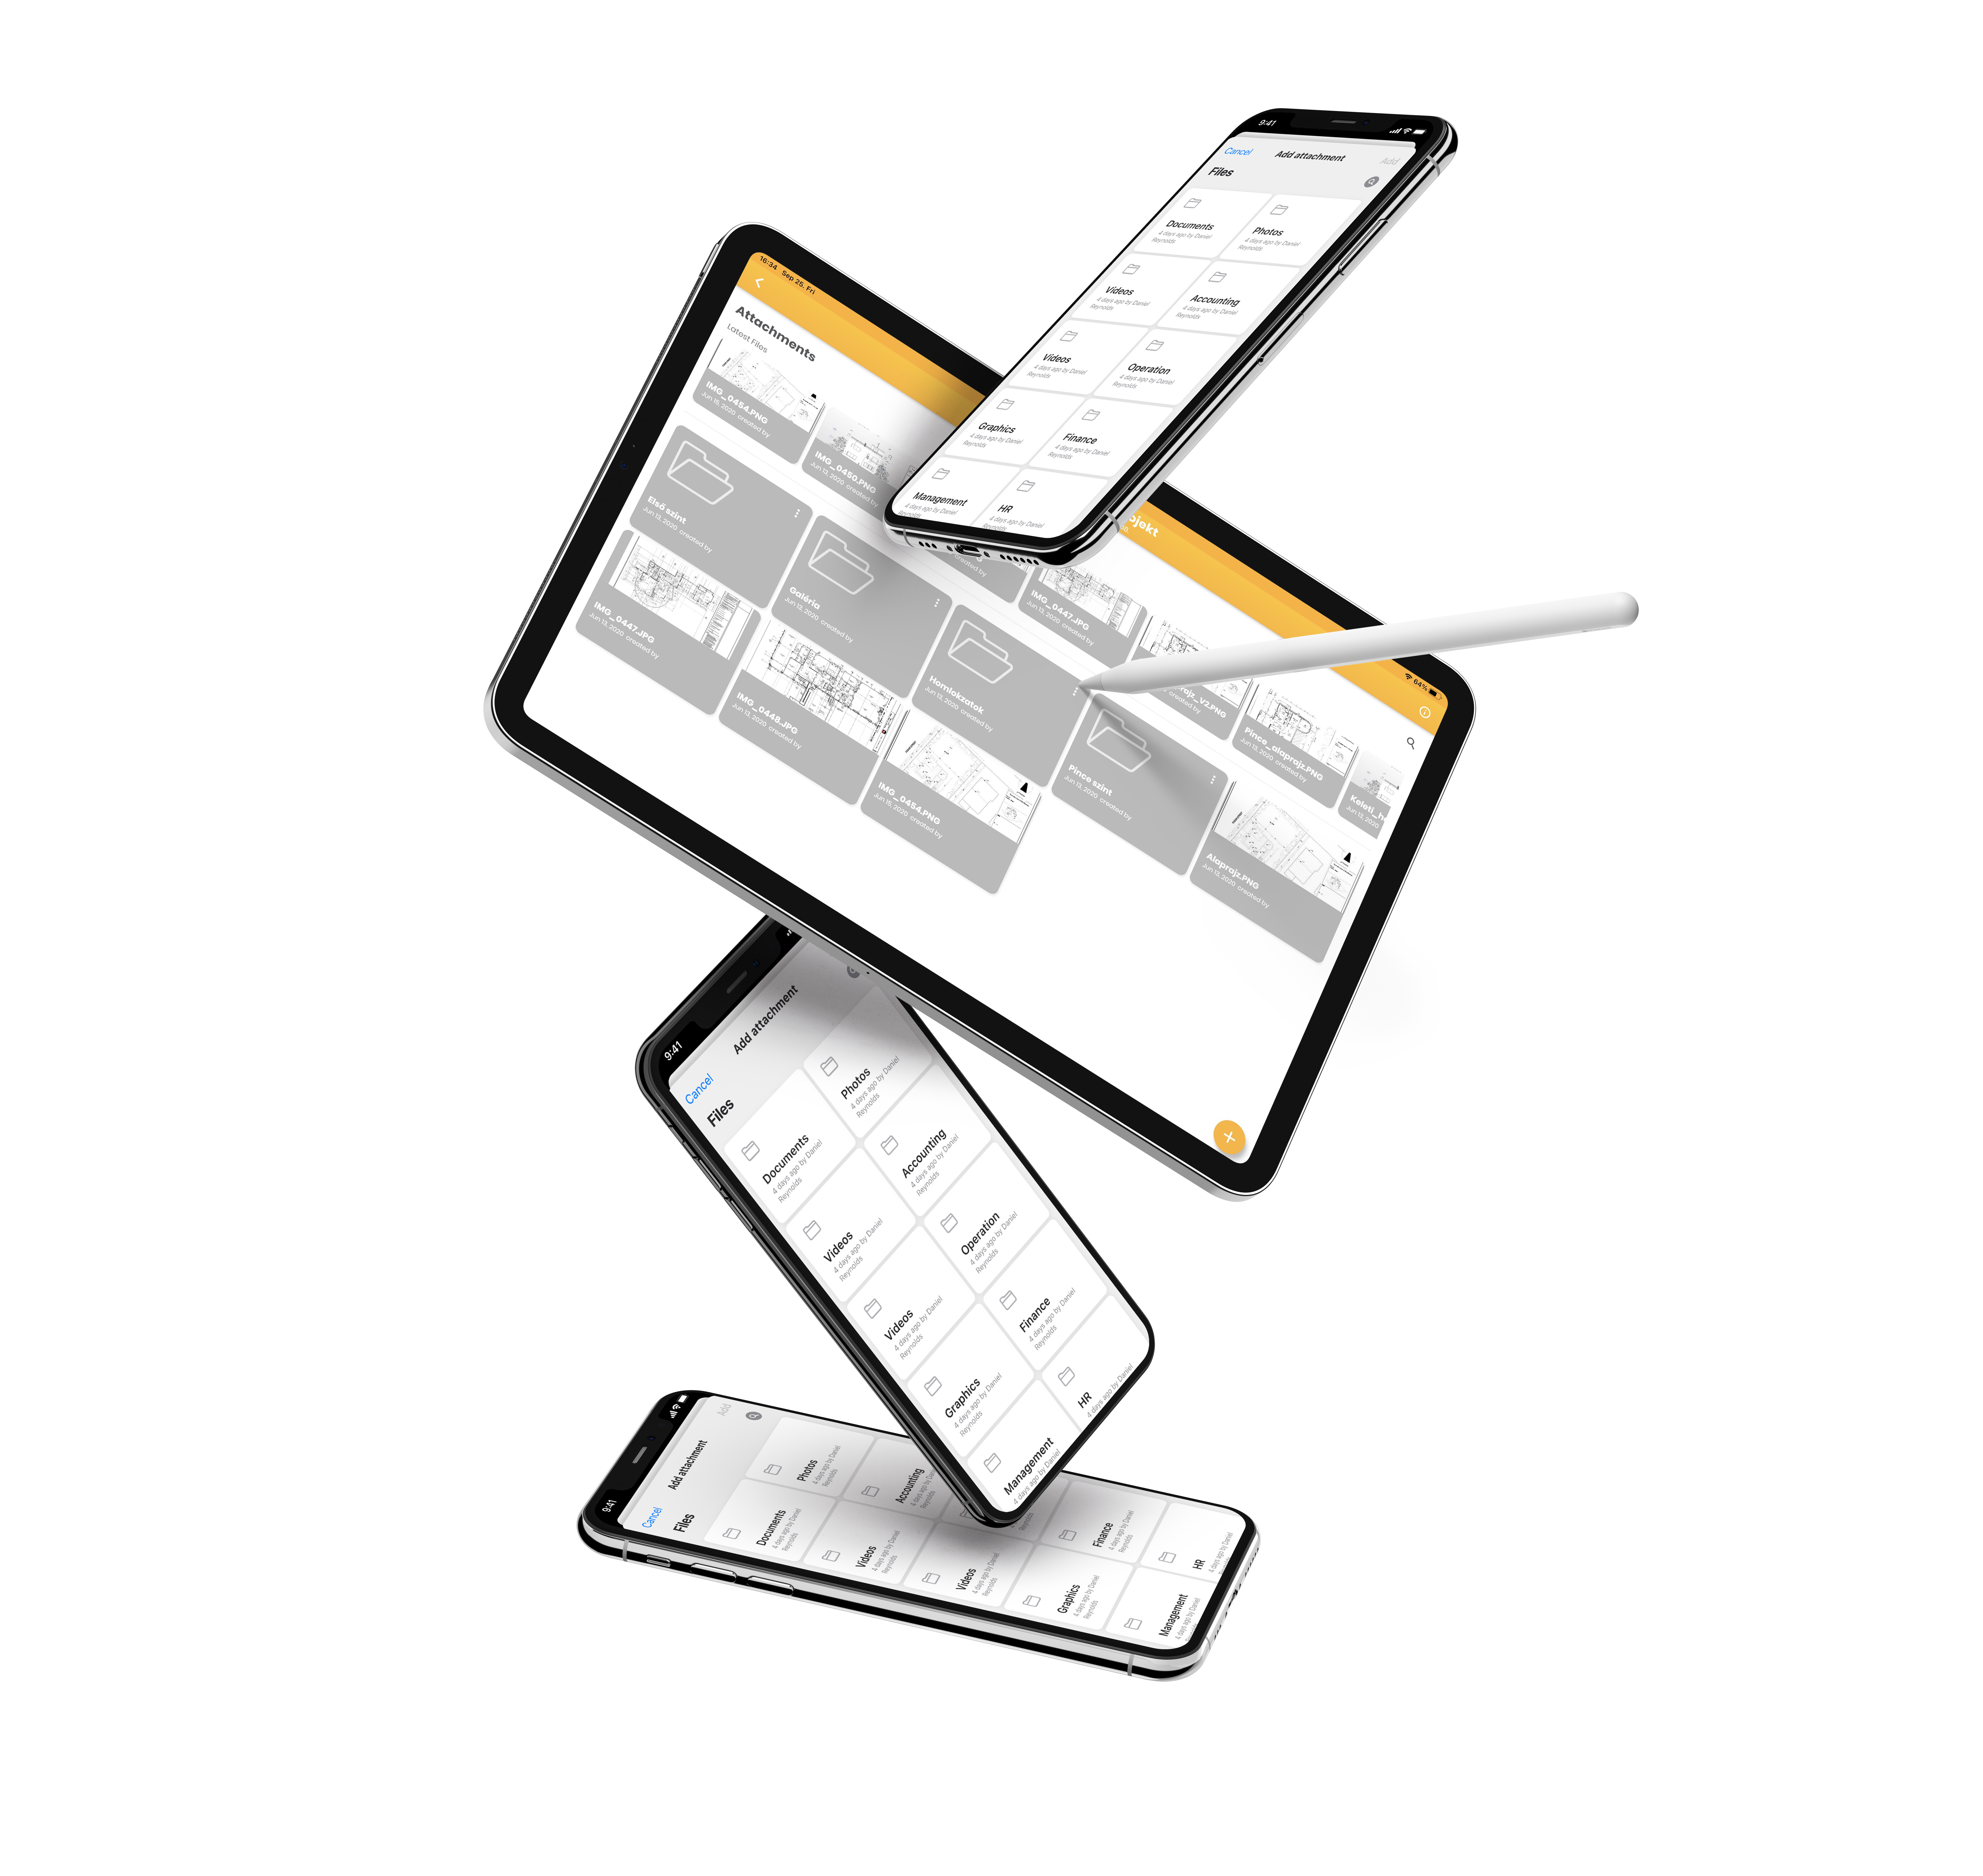 project management software file management on floating apple devices